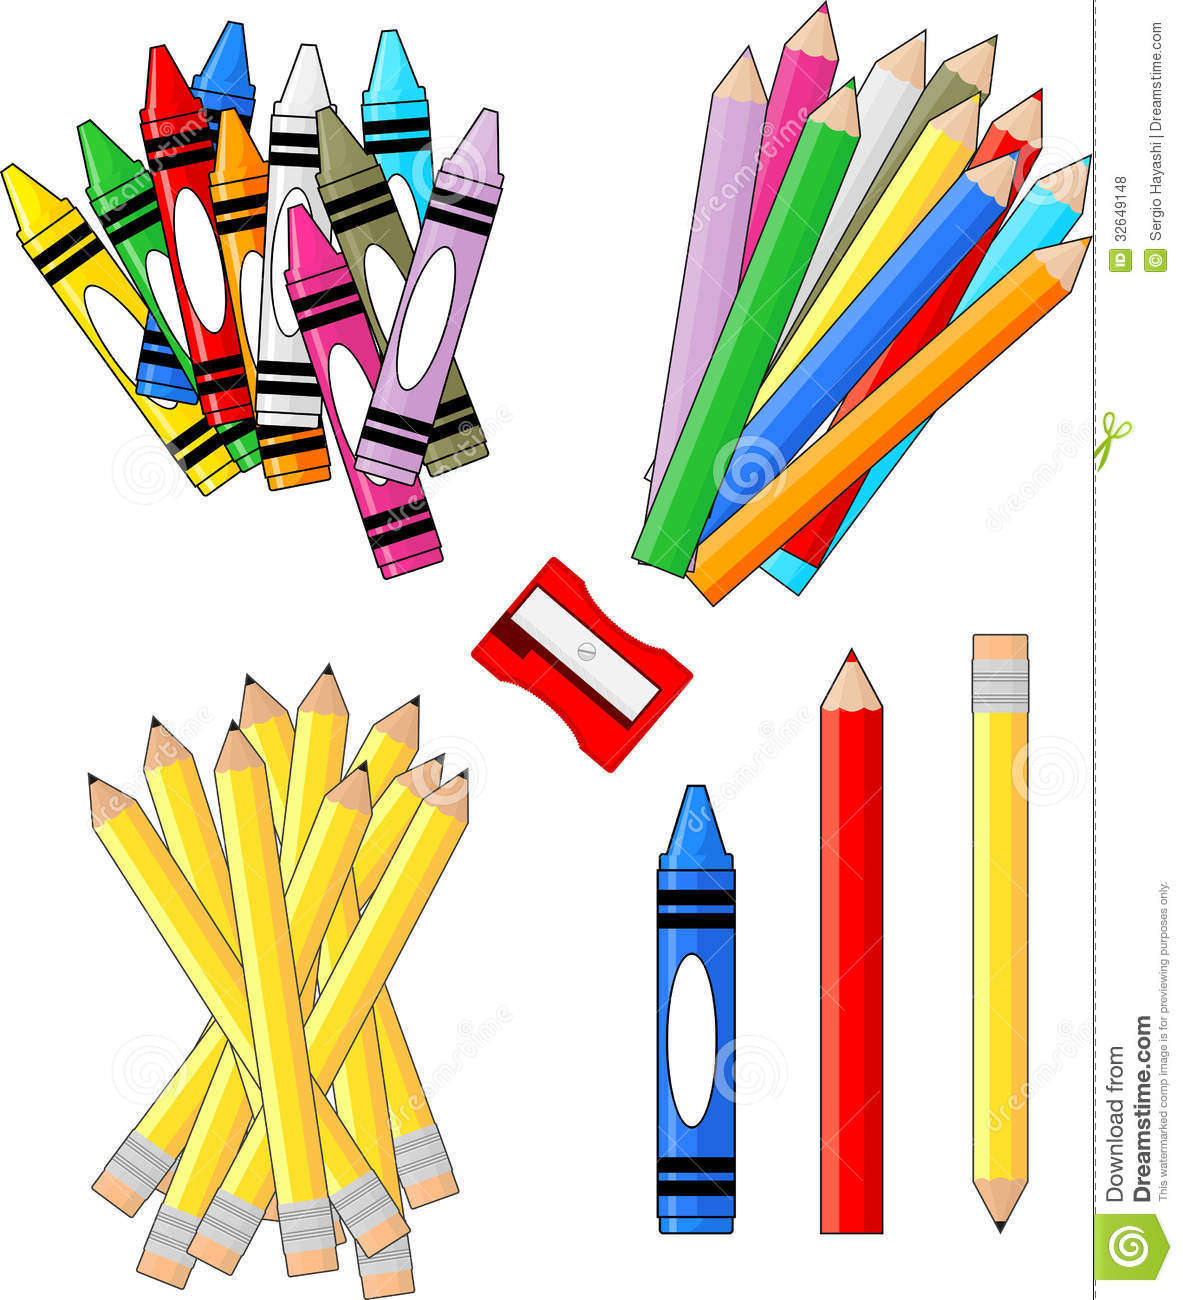 School supplies clipart image free stock Art Materials Clipart - Clipart Kid free stock